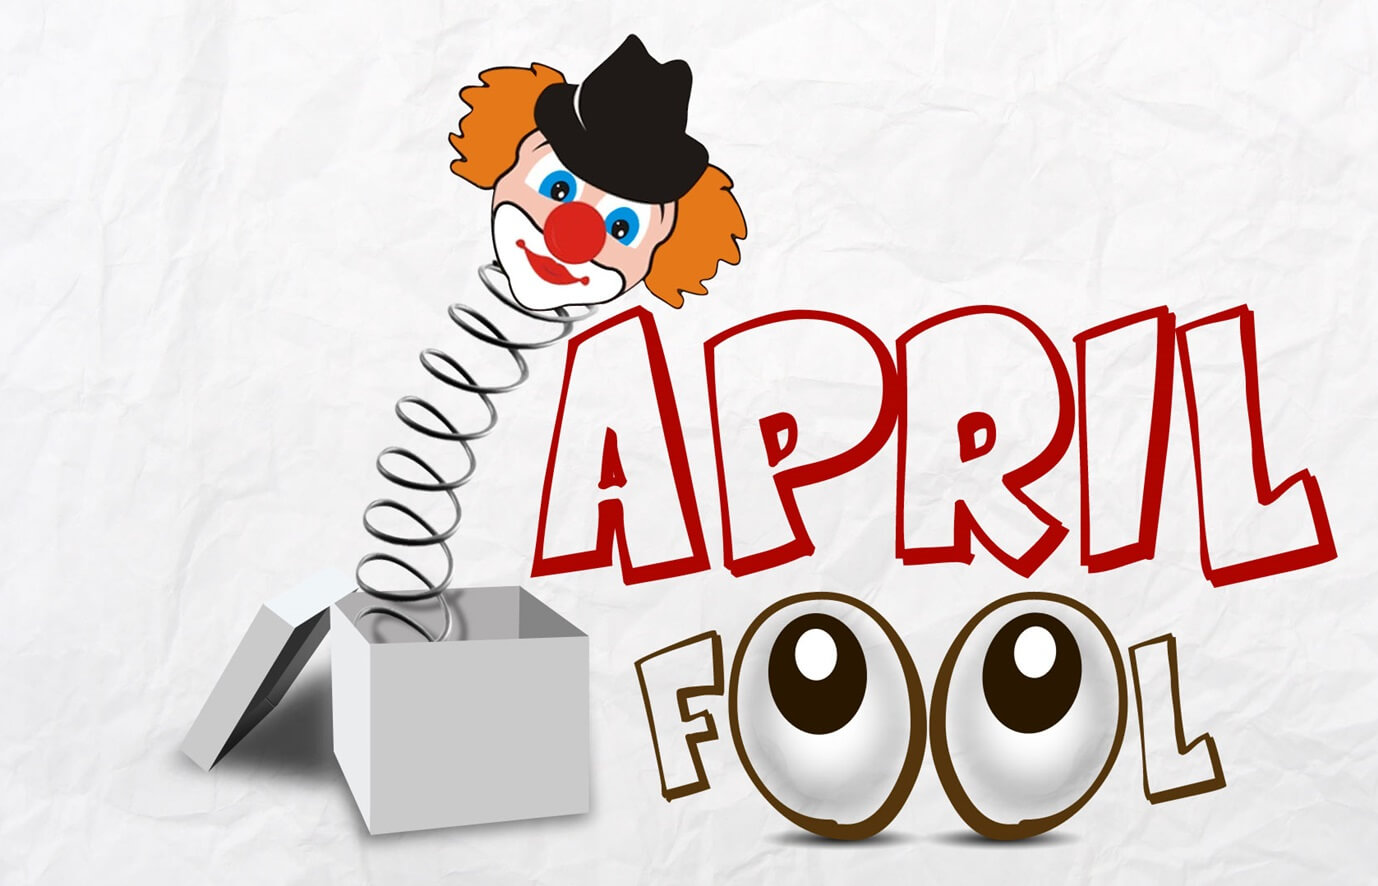 april fools day joker out of the box image background hd wallpaper